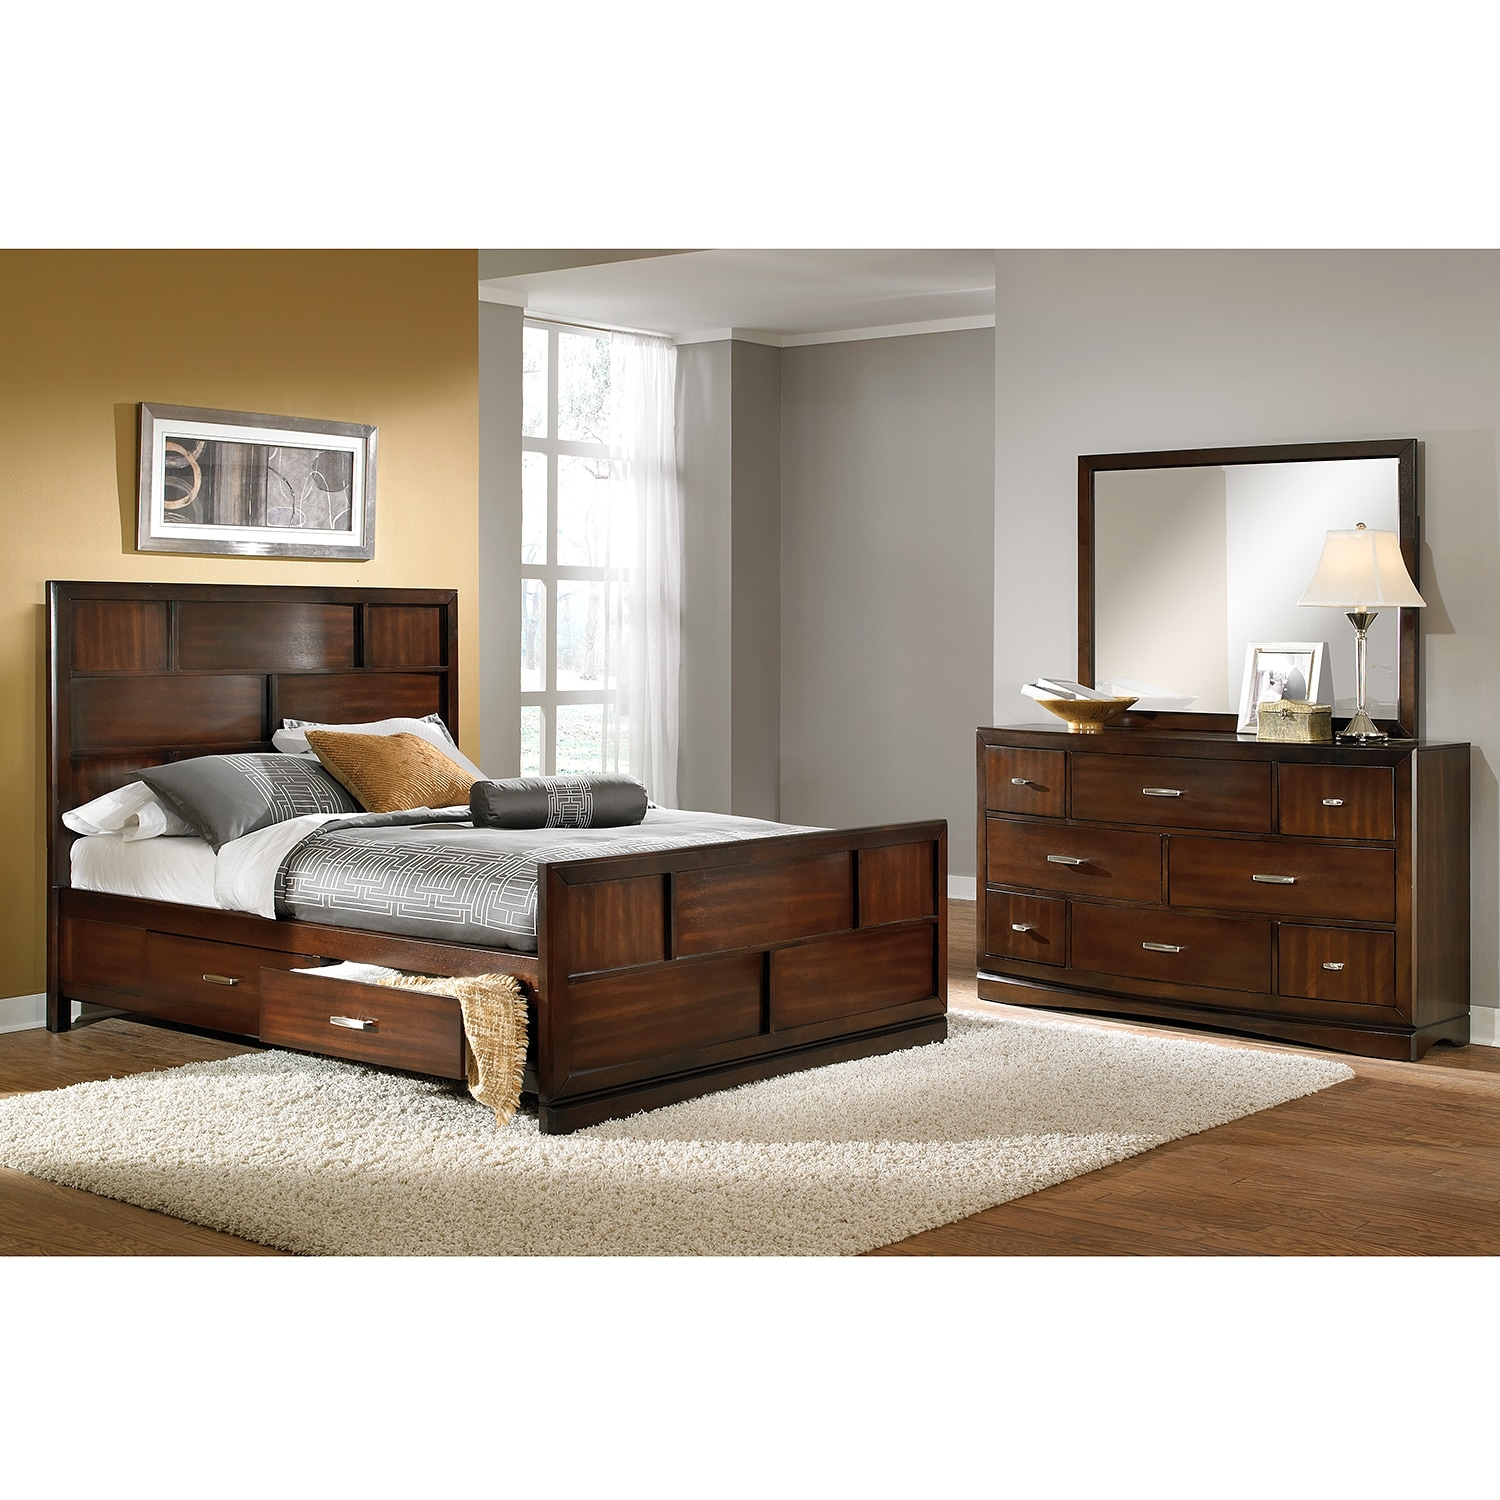 Shop Bedroom Packages Value City Furniture